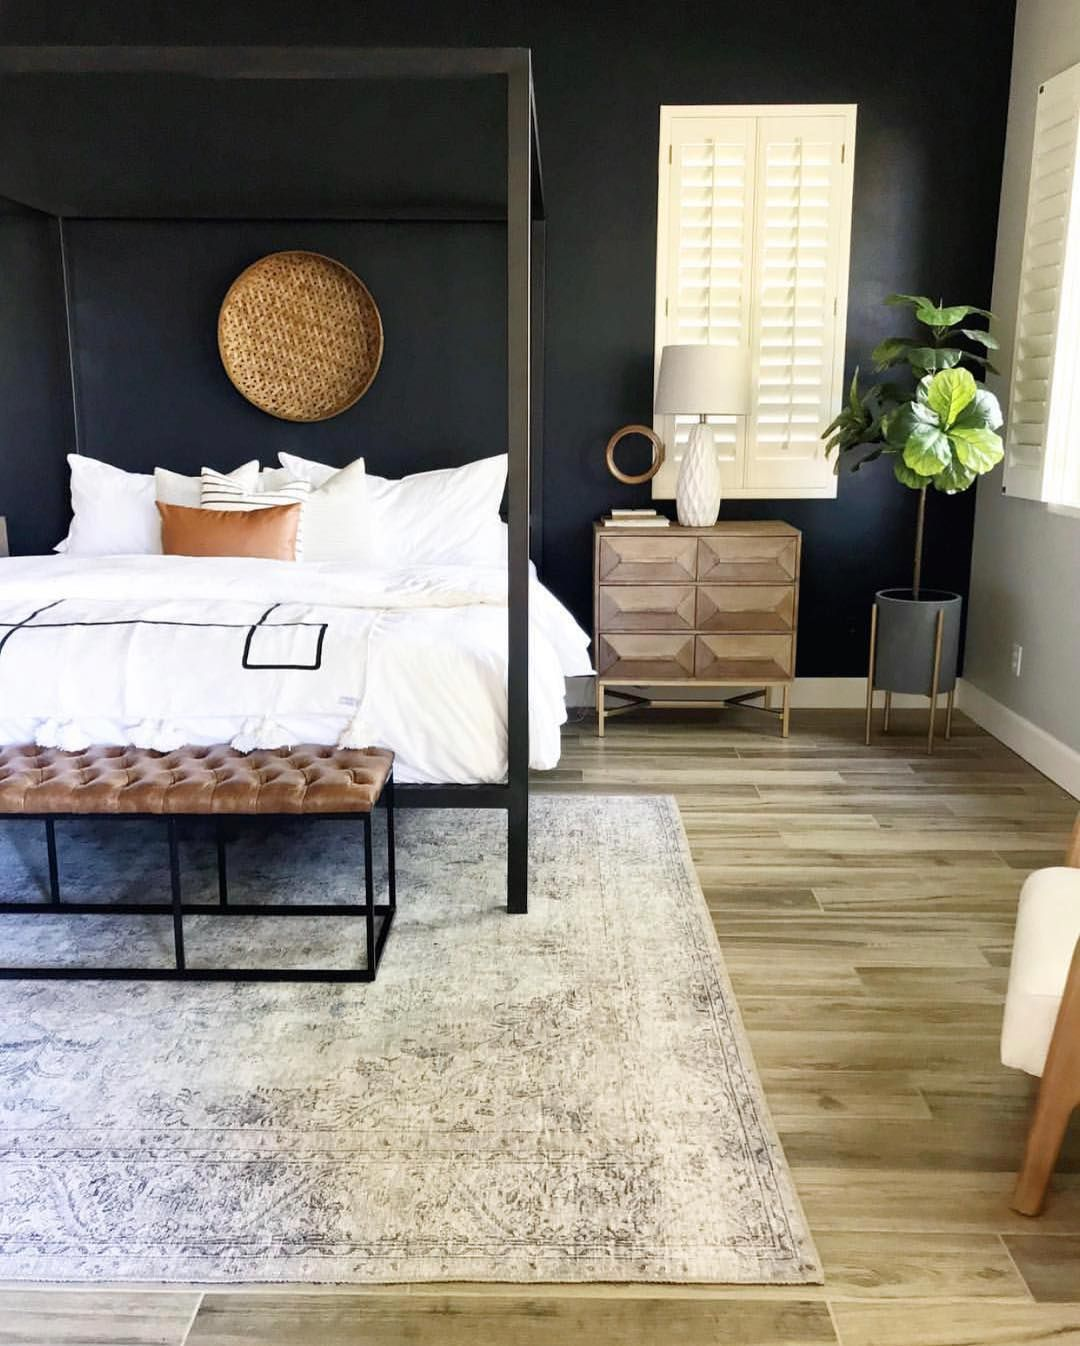 Mysha On Instagram Question How Do You Feel About A Black Accent Wall I M Diggin This Dr Black Accent Walls Dramatic Bedroom Scandinavian Design Bedroom